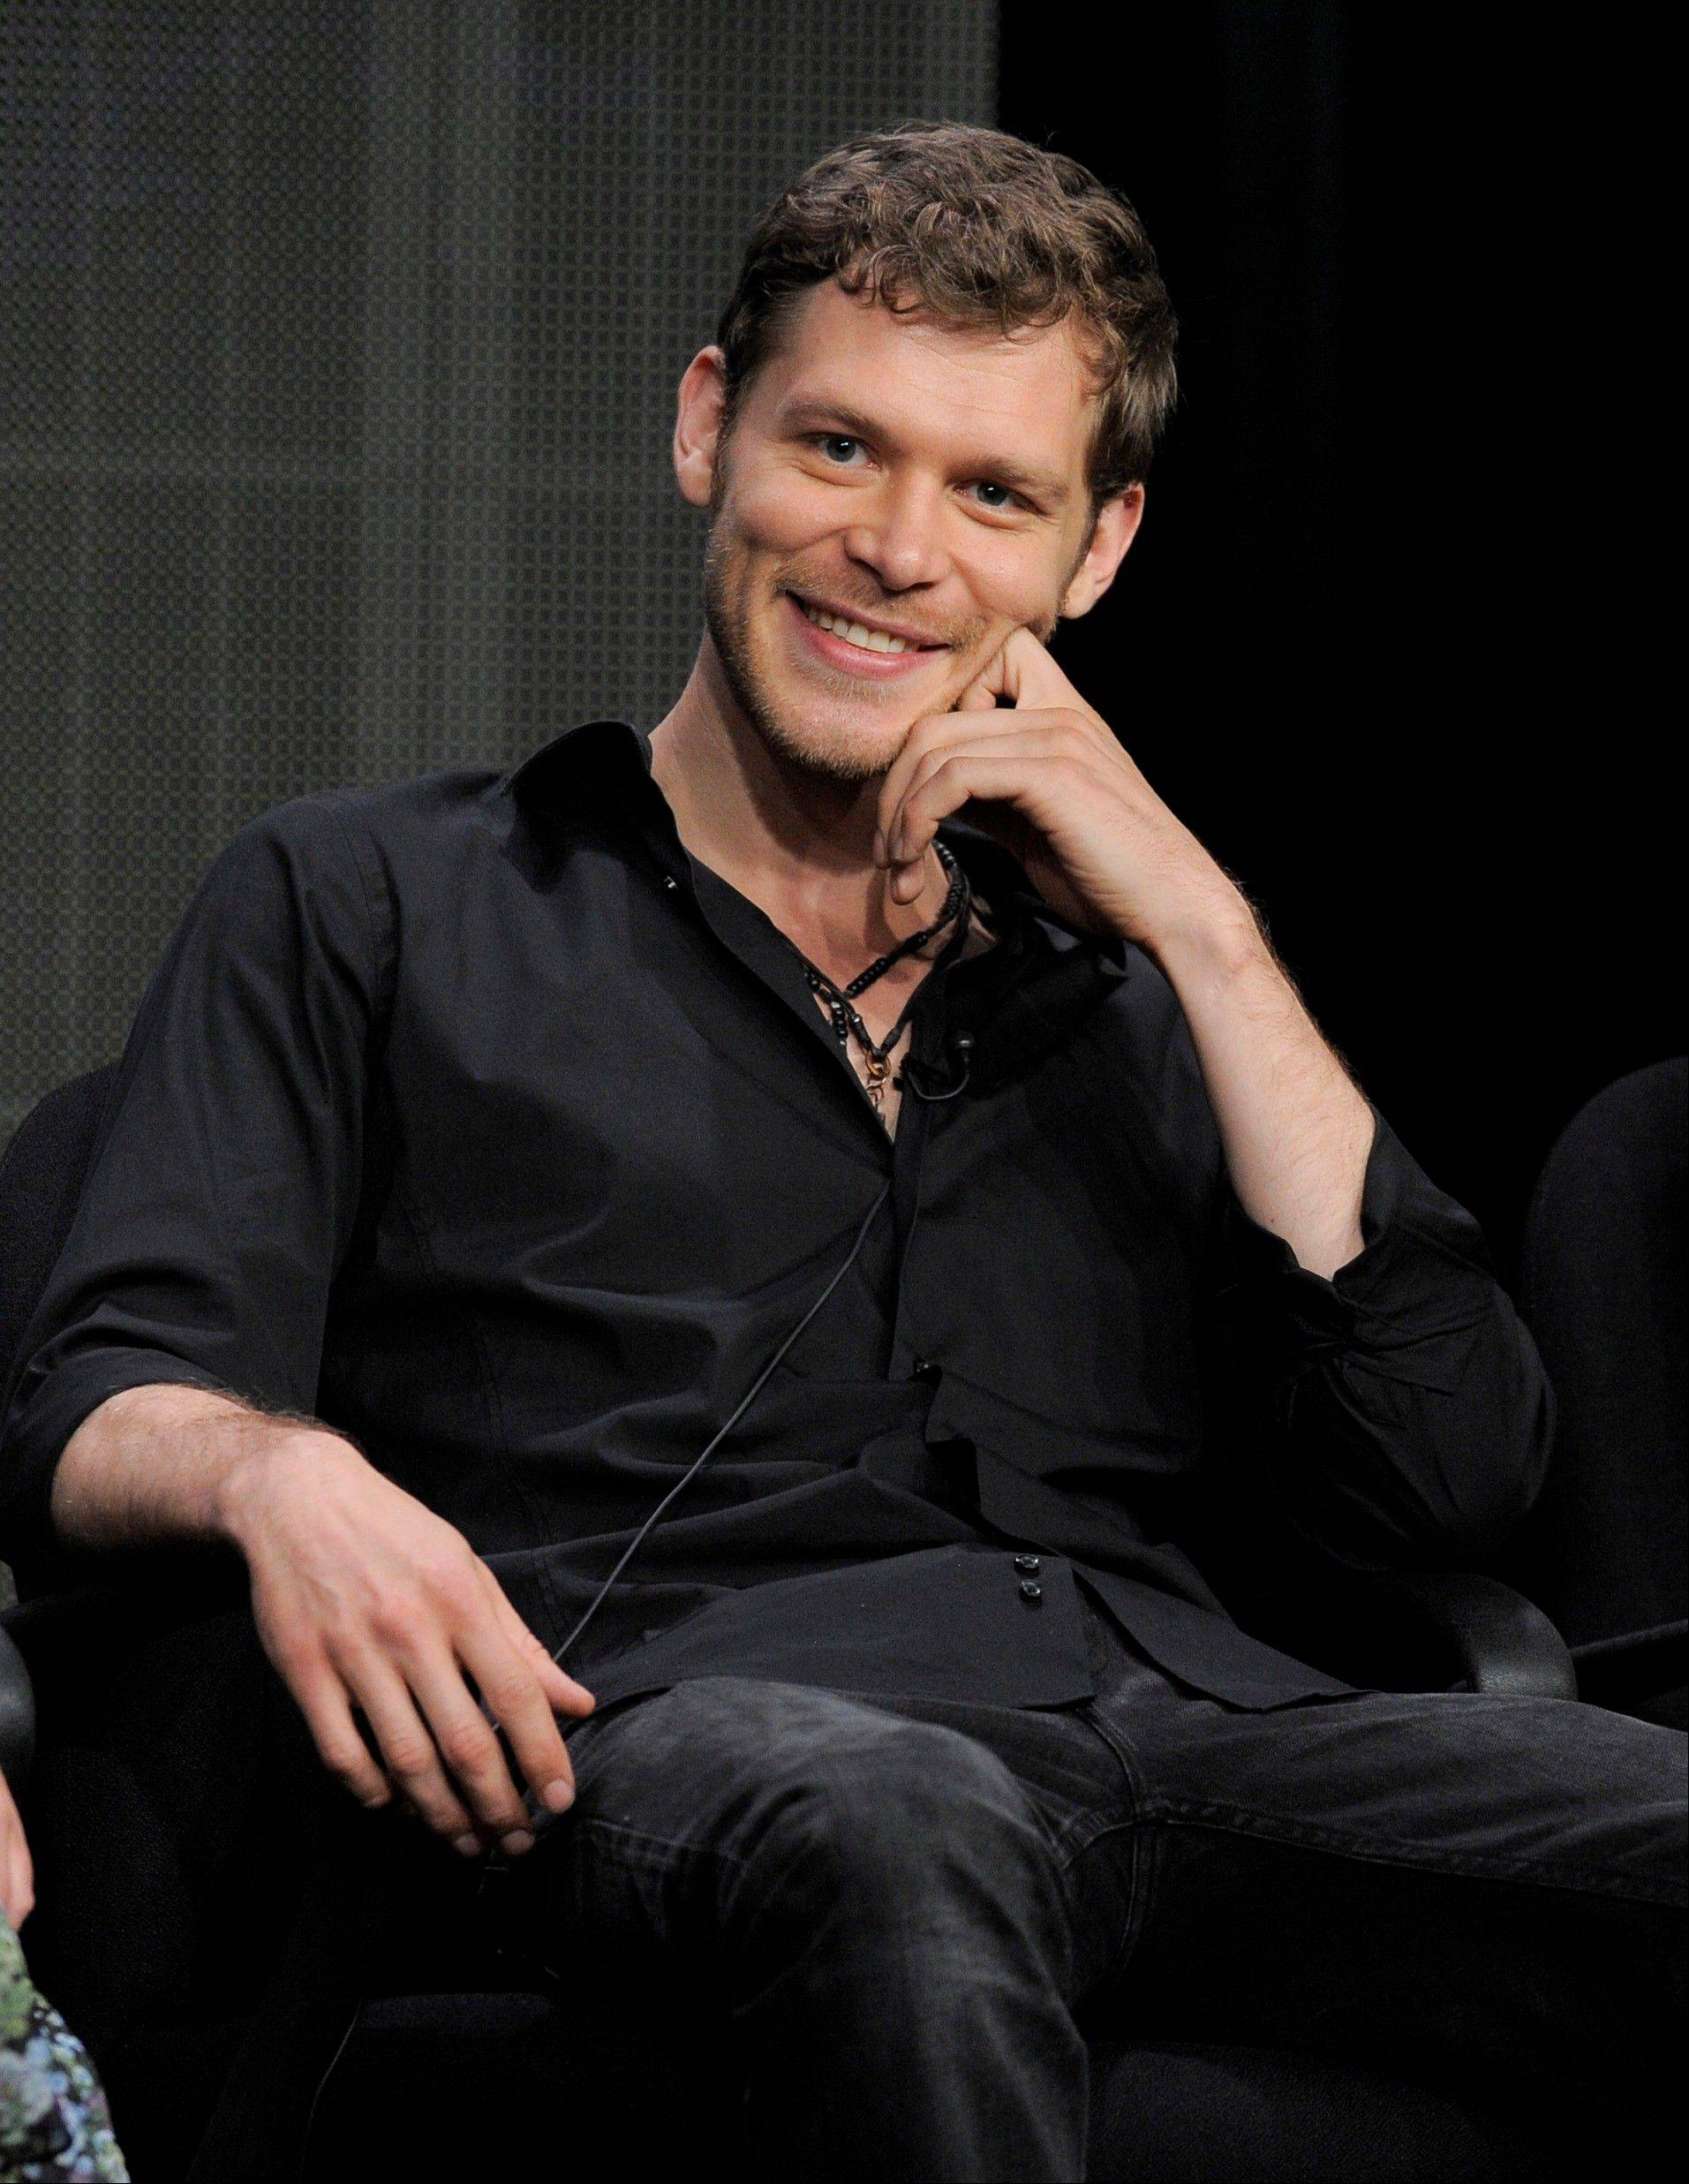 Joseph Morgan stars in �The Originals,� a spinoff of �The Vampire Diaries,� that premieres at 8 p.m. Thursday, Oct. 3, on The CW.